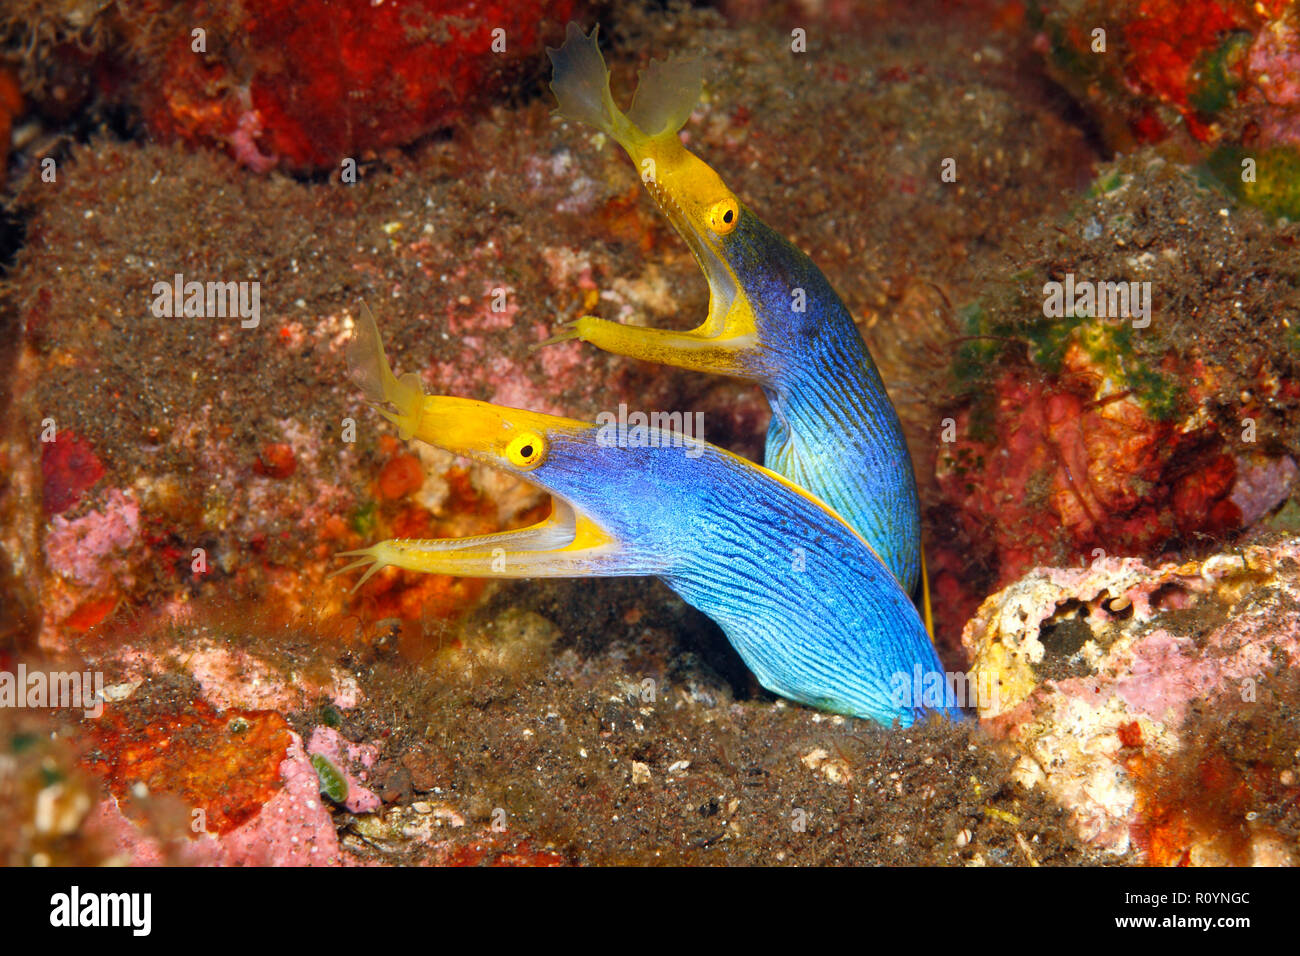 two-blue-ribbon-eels-rhinomuraena-quaesita-sharing-the-same-burrow-tulamben-bali-indonesia-bali-sea-indian-ocean-R0YNGC.jpg